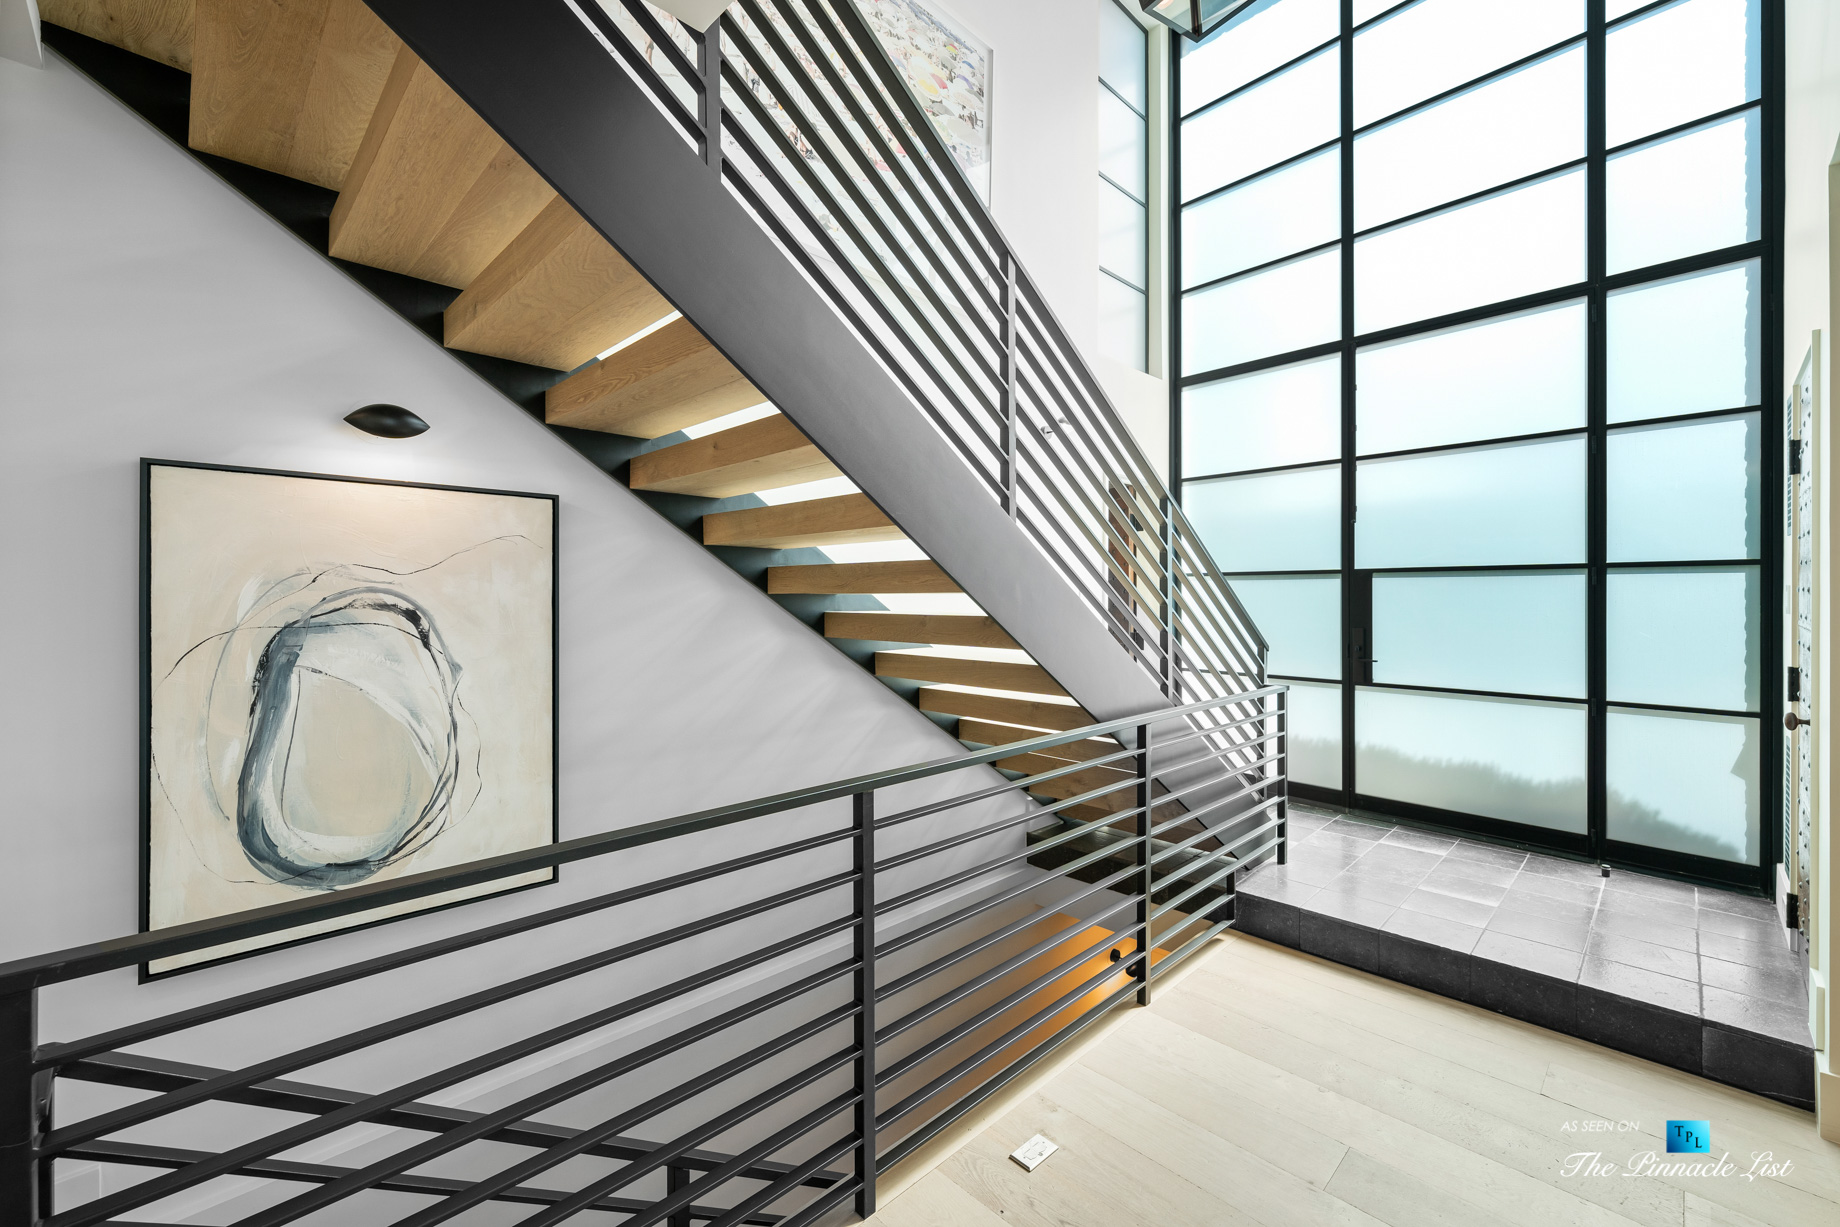 508 The Strand, Manhattan Beach, CA, USA – House Entry Stairs – Luxury Real Estate – Oceanfront Home